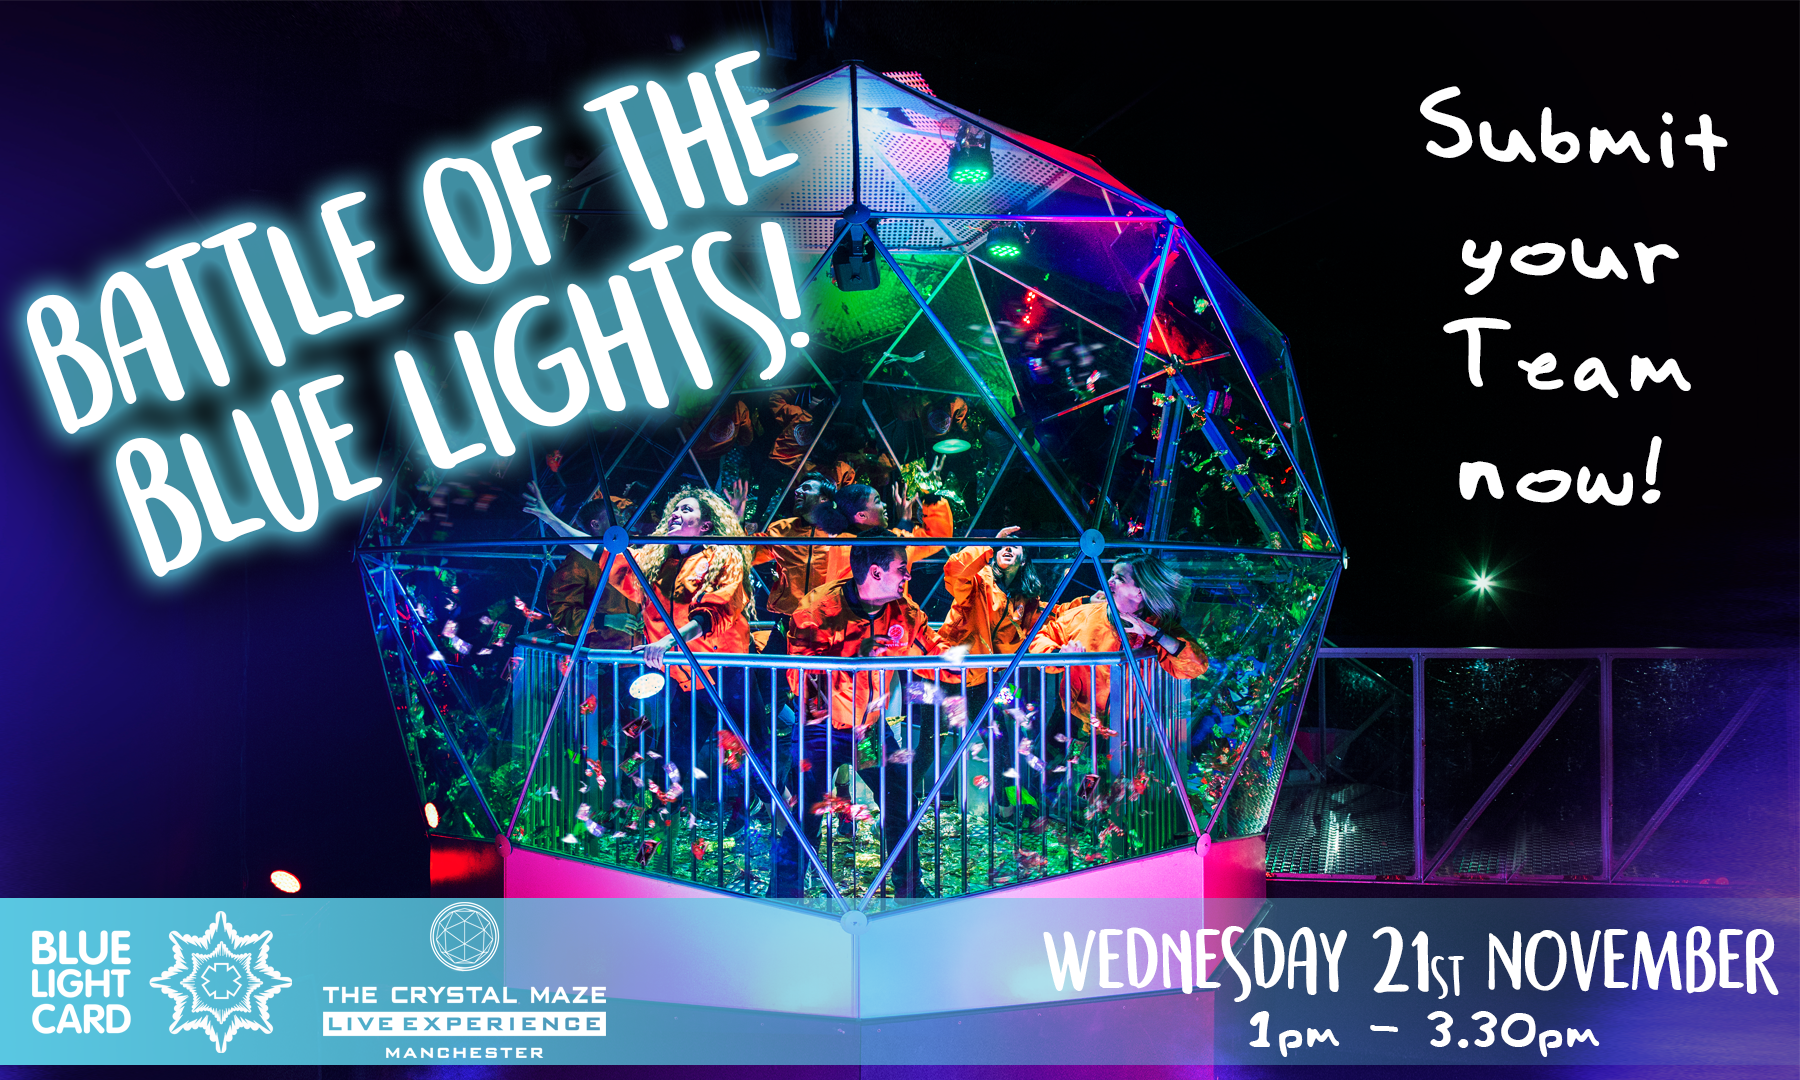 We are taking over The Crystal Maze LIVE Experience Manchester for a Battle of Blue Light!